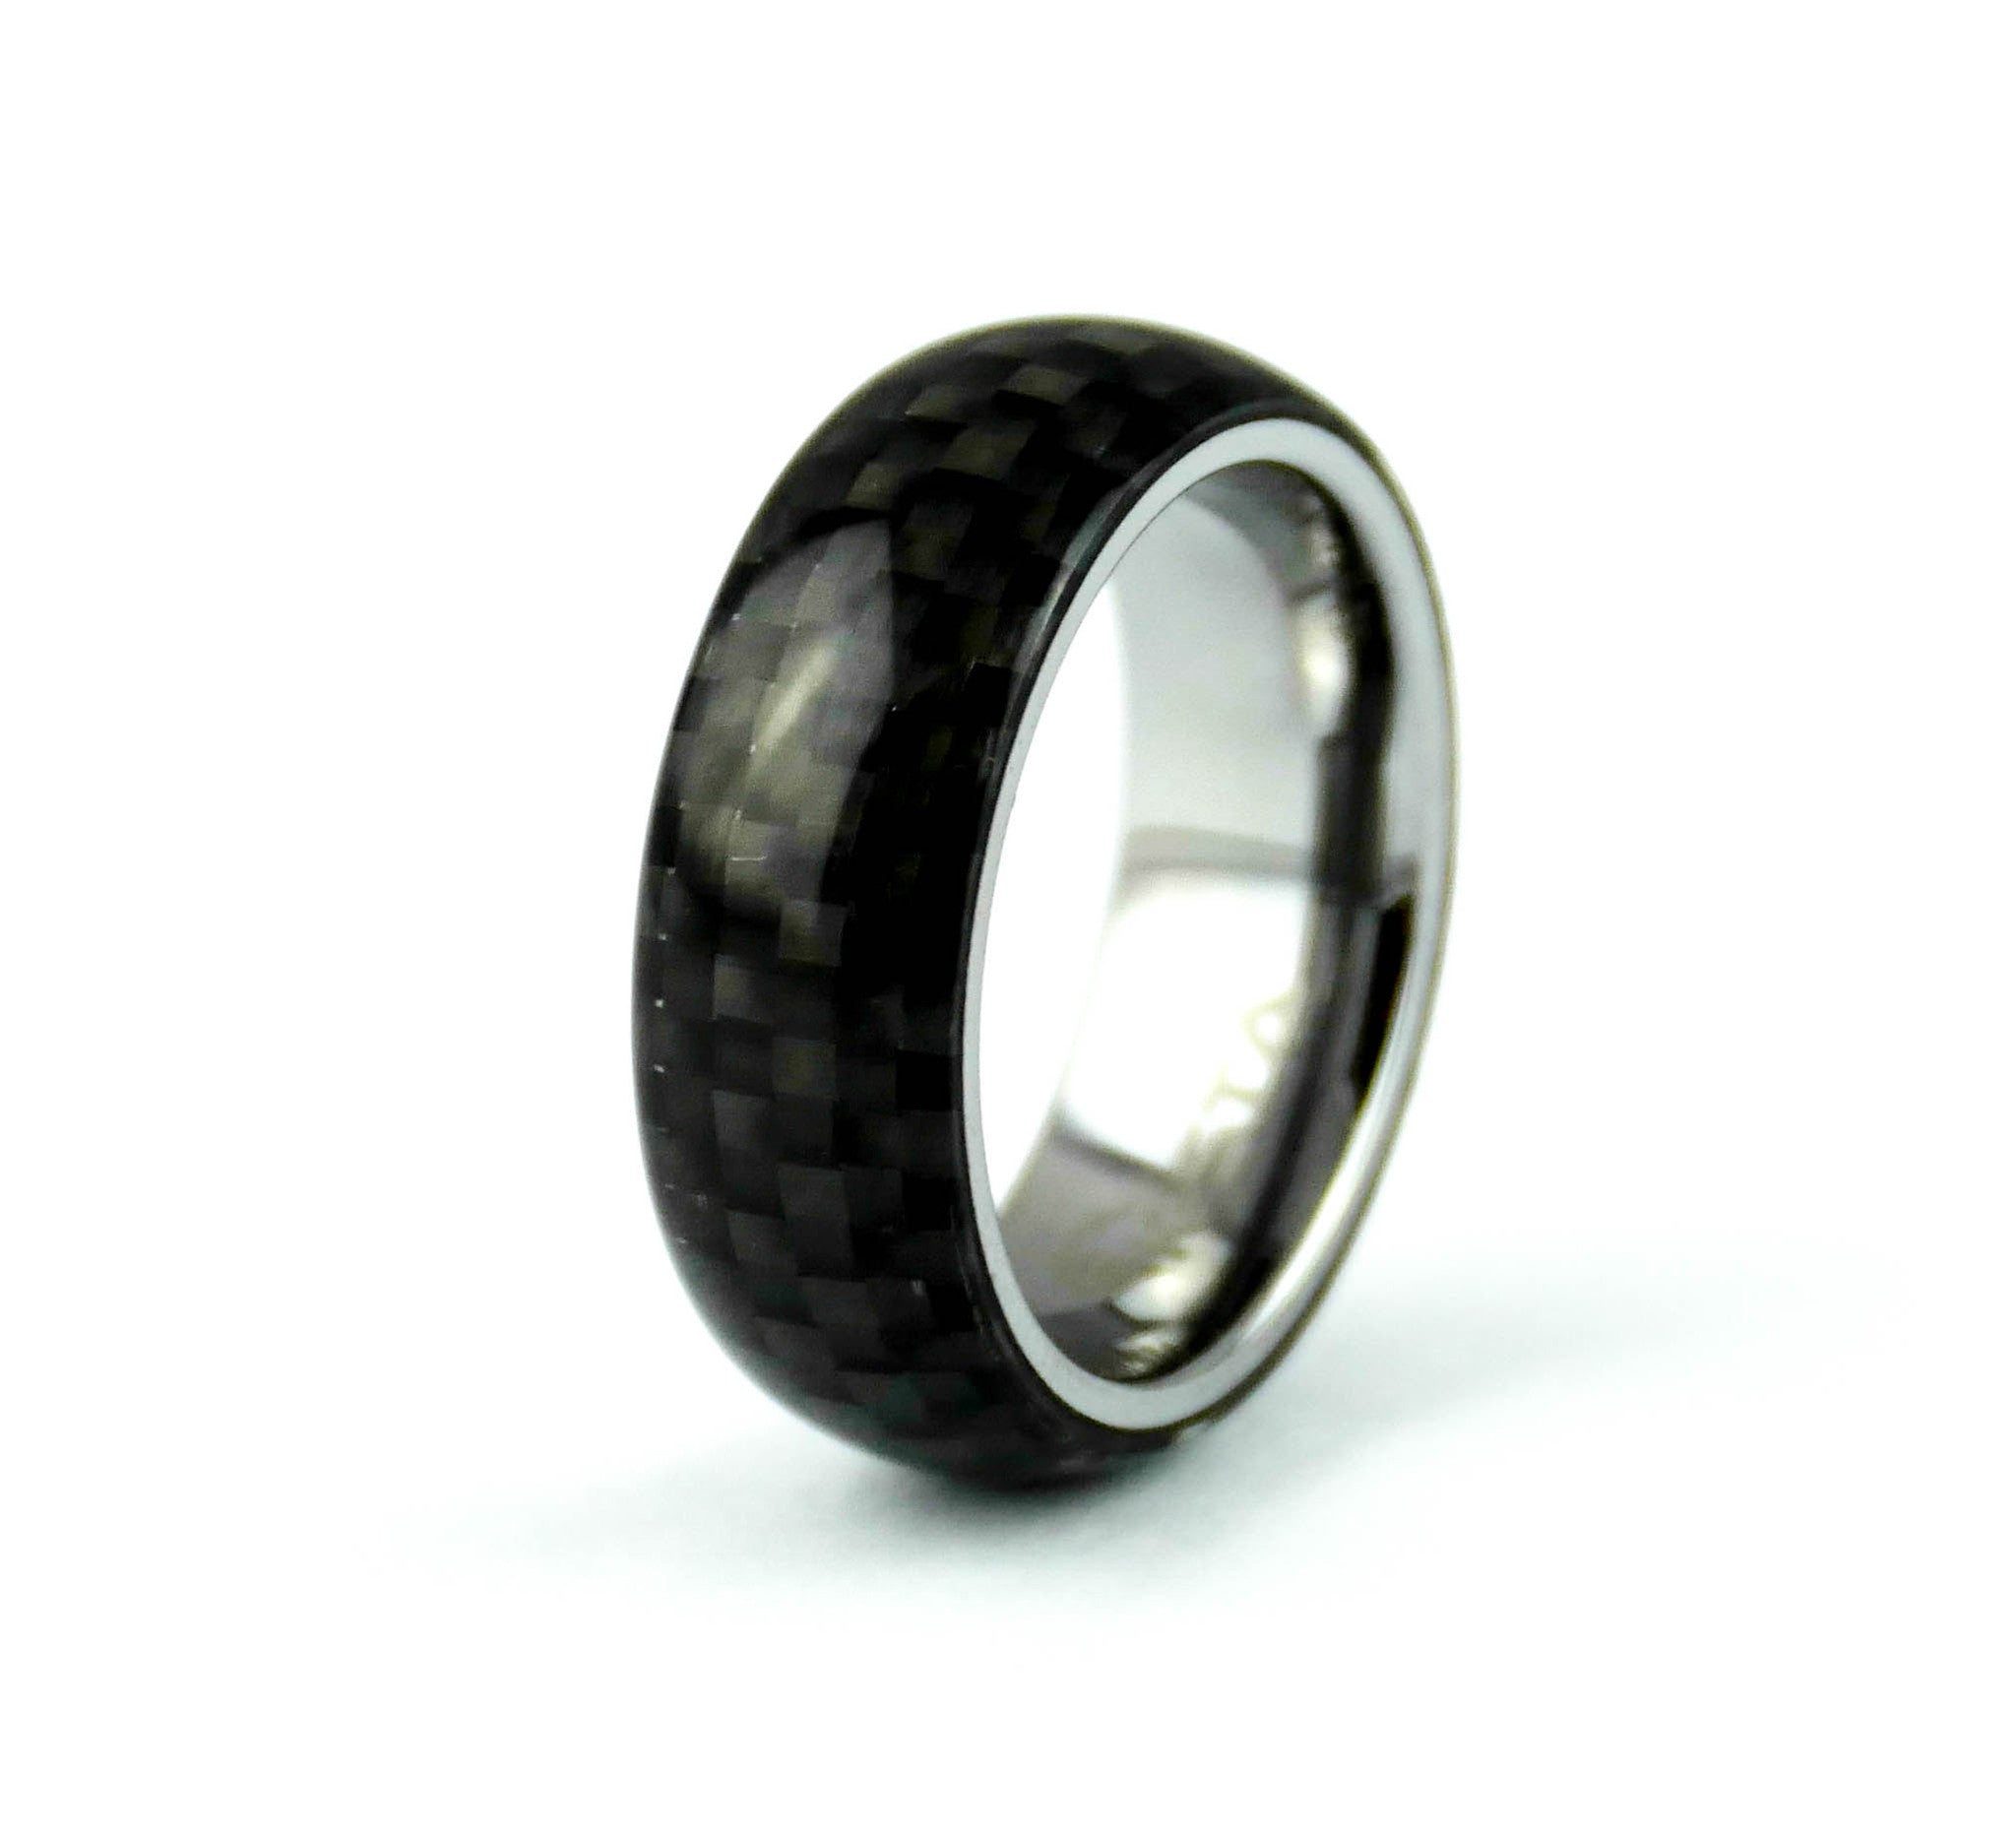 s rings tusen inlay tungsten product black wedding men larger carbide image carbon fiber jewelry see